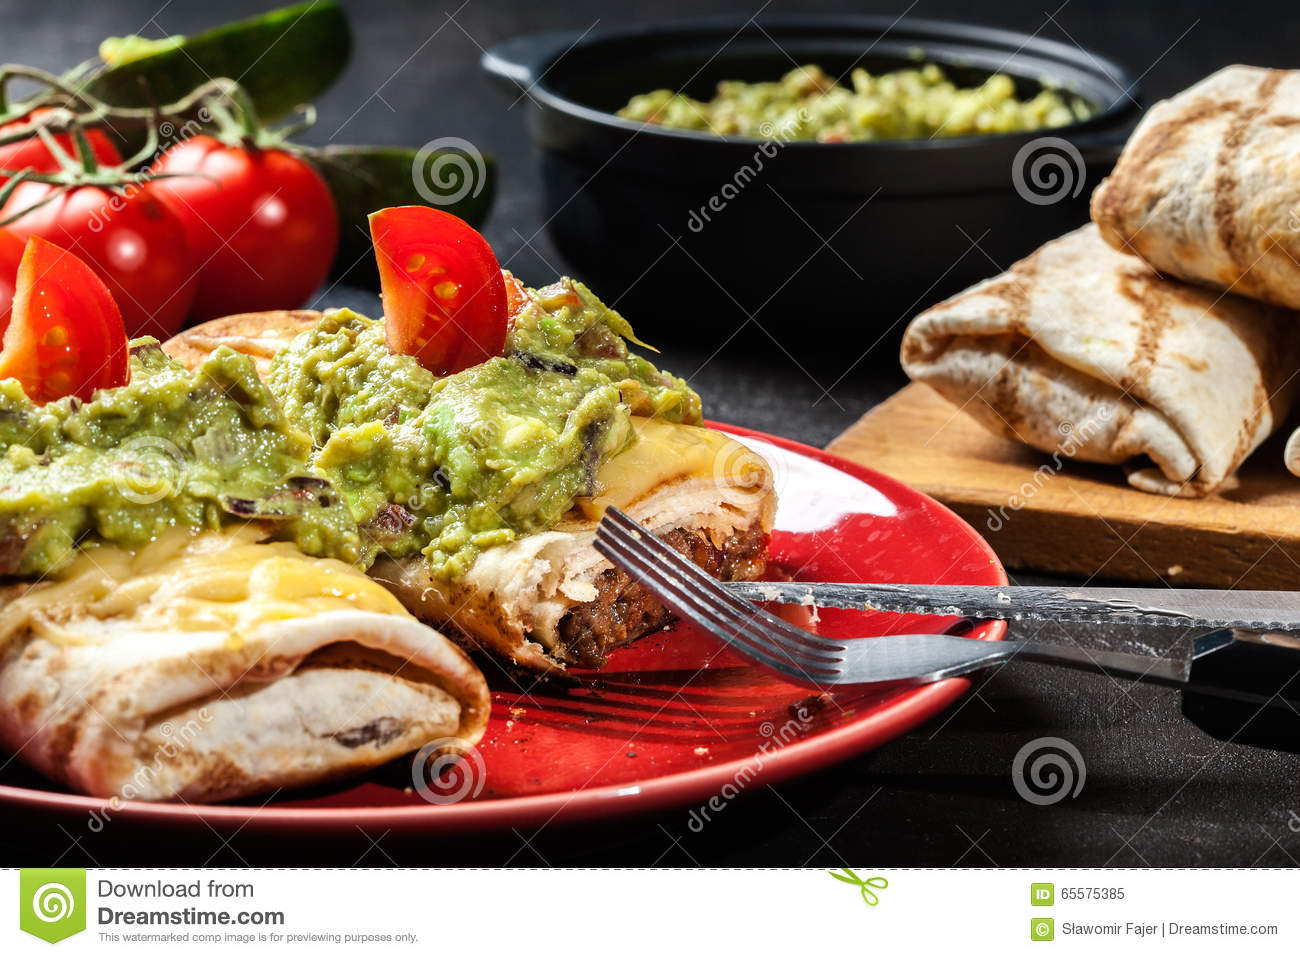 Chimichanga mexicano com mergulho do guacamole